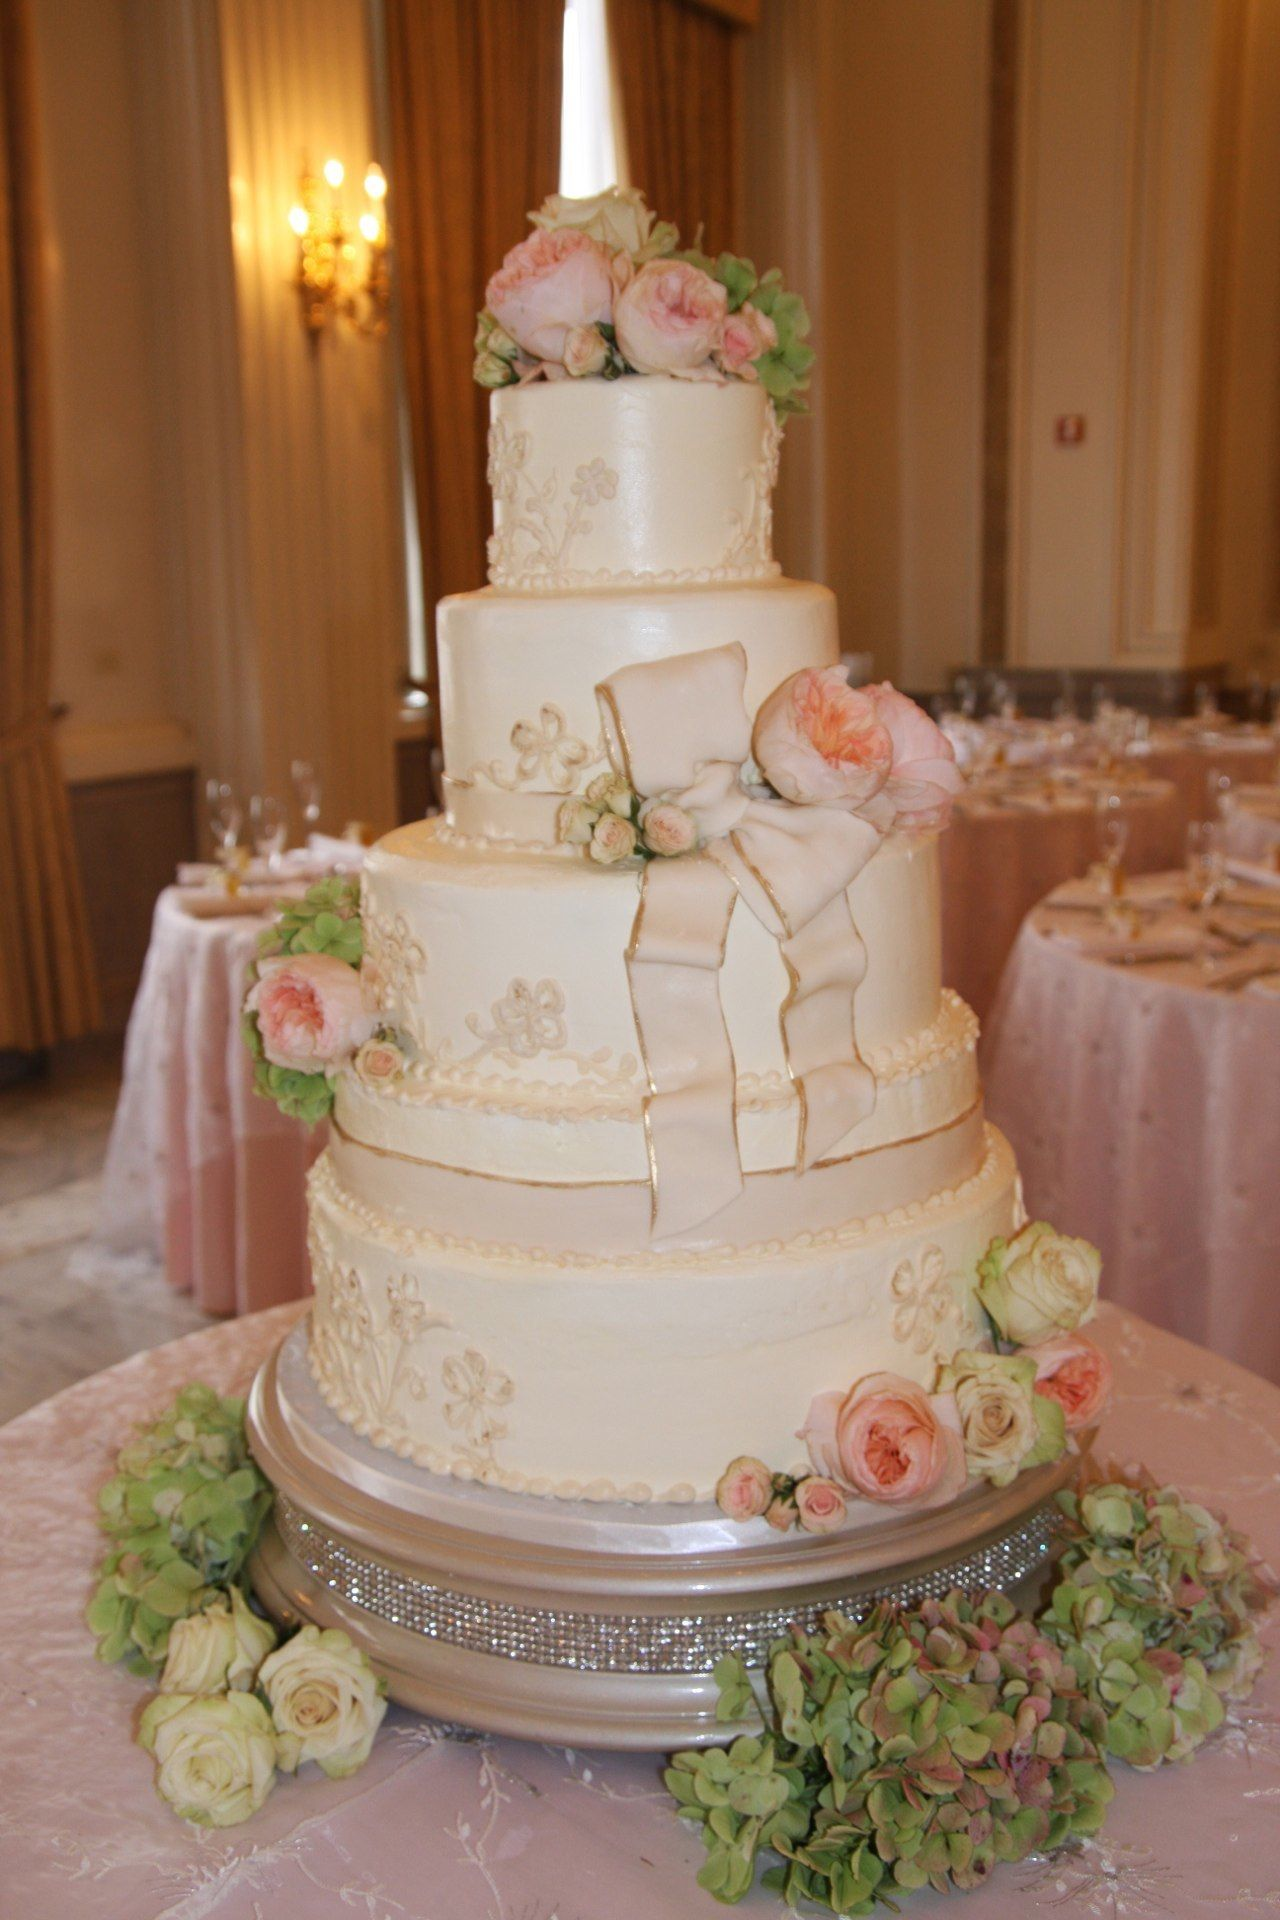 Pink Roses & Hydrangea s on buttercream frosting Cake by Susan